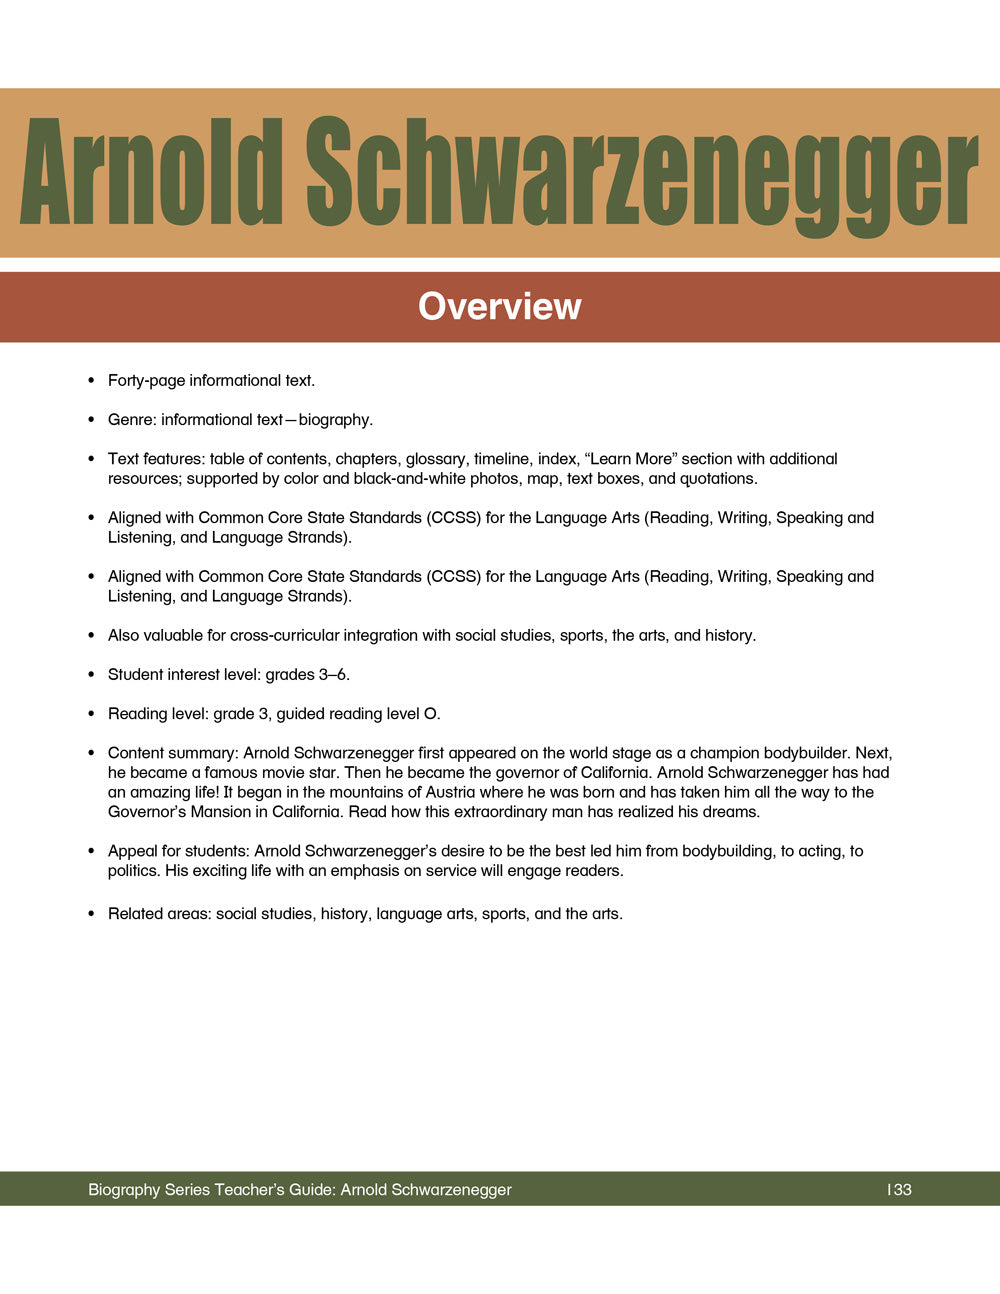 Arnold Schwarzenegger Teacher's Guide